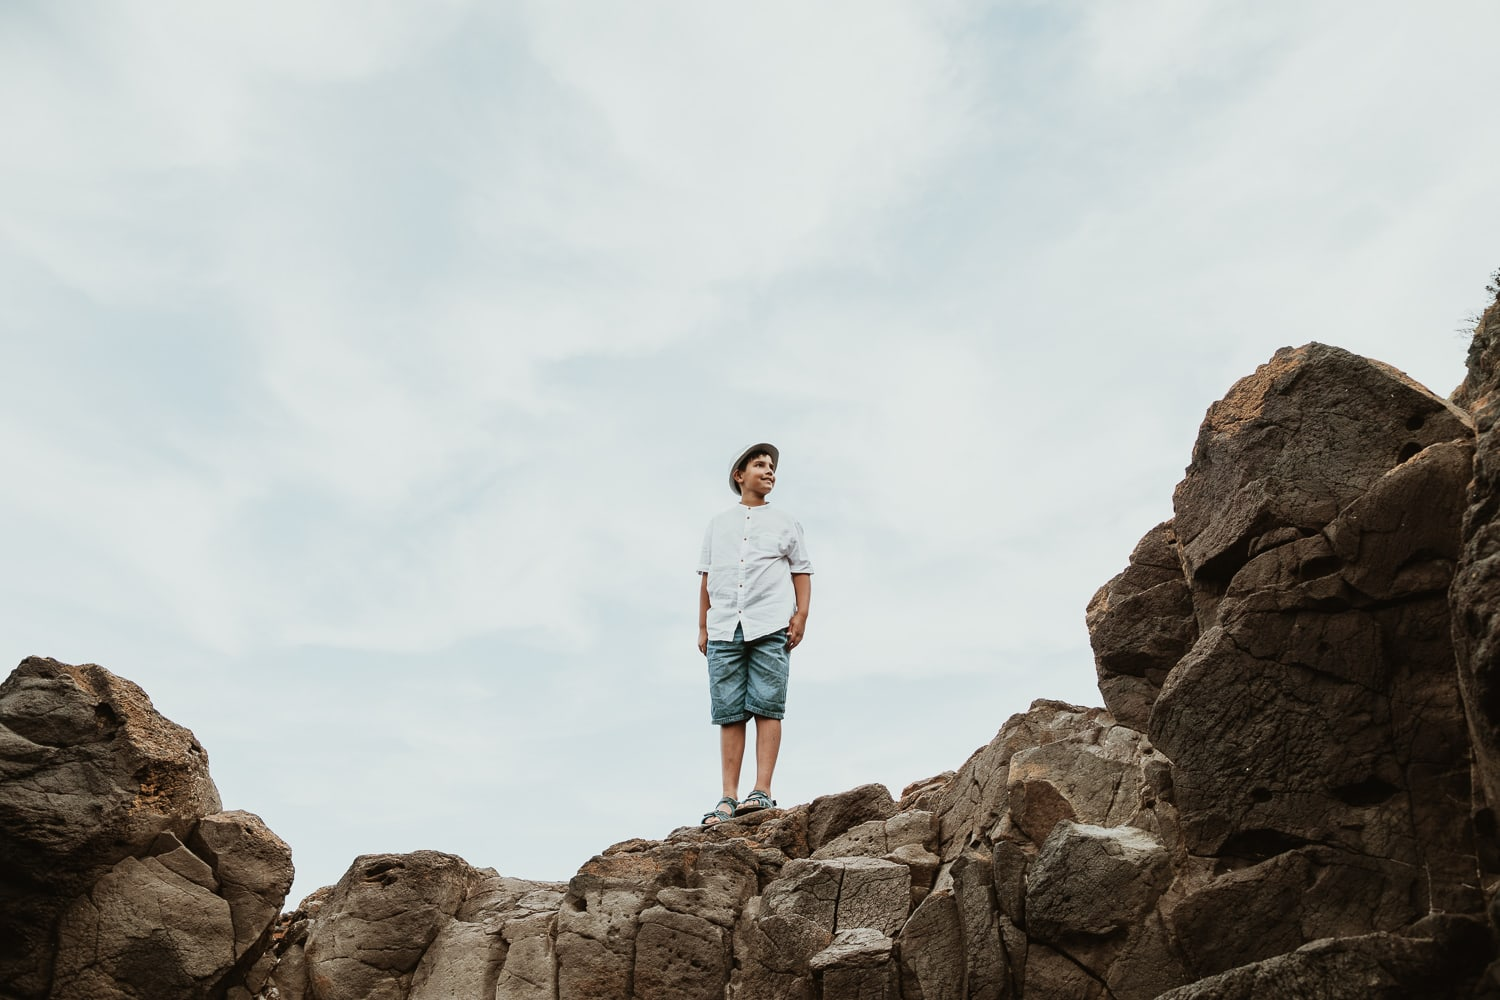 Mornington Peninsula - Kid on rocks looking to sky - wearing shorts and shirt - Cretive children and family photography